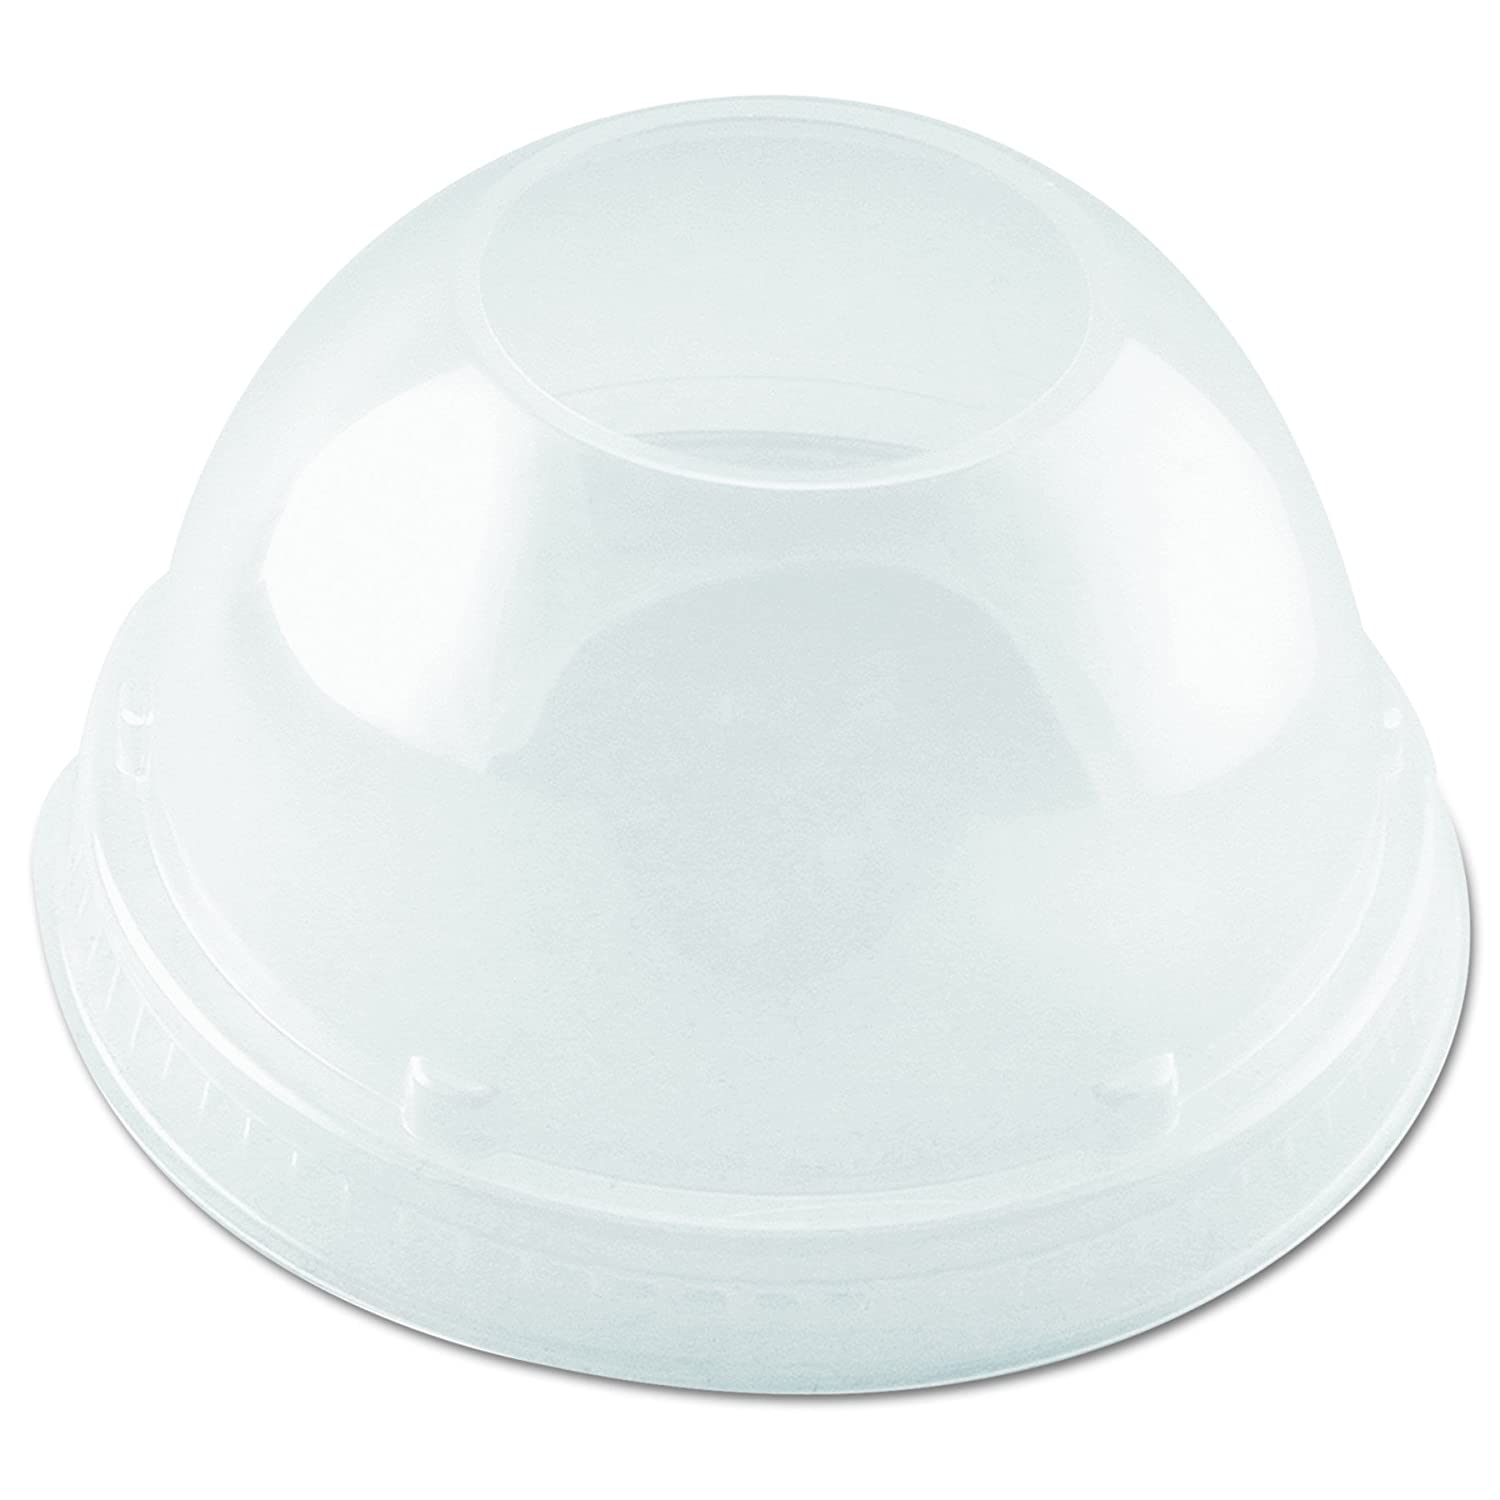 Dart DLR662 Clear Lid depot PET 662 Case of 1000 Cheap SALE Start Dome With Hole